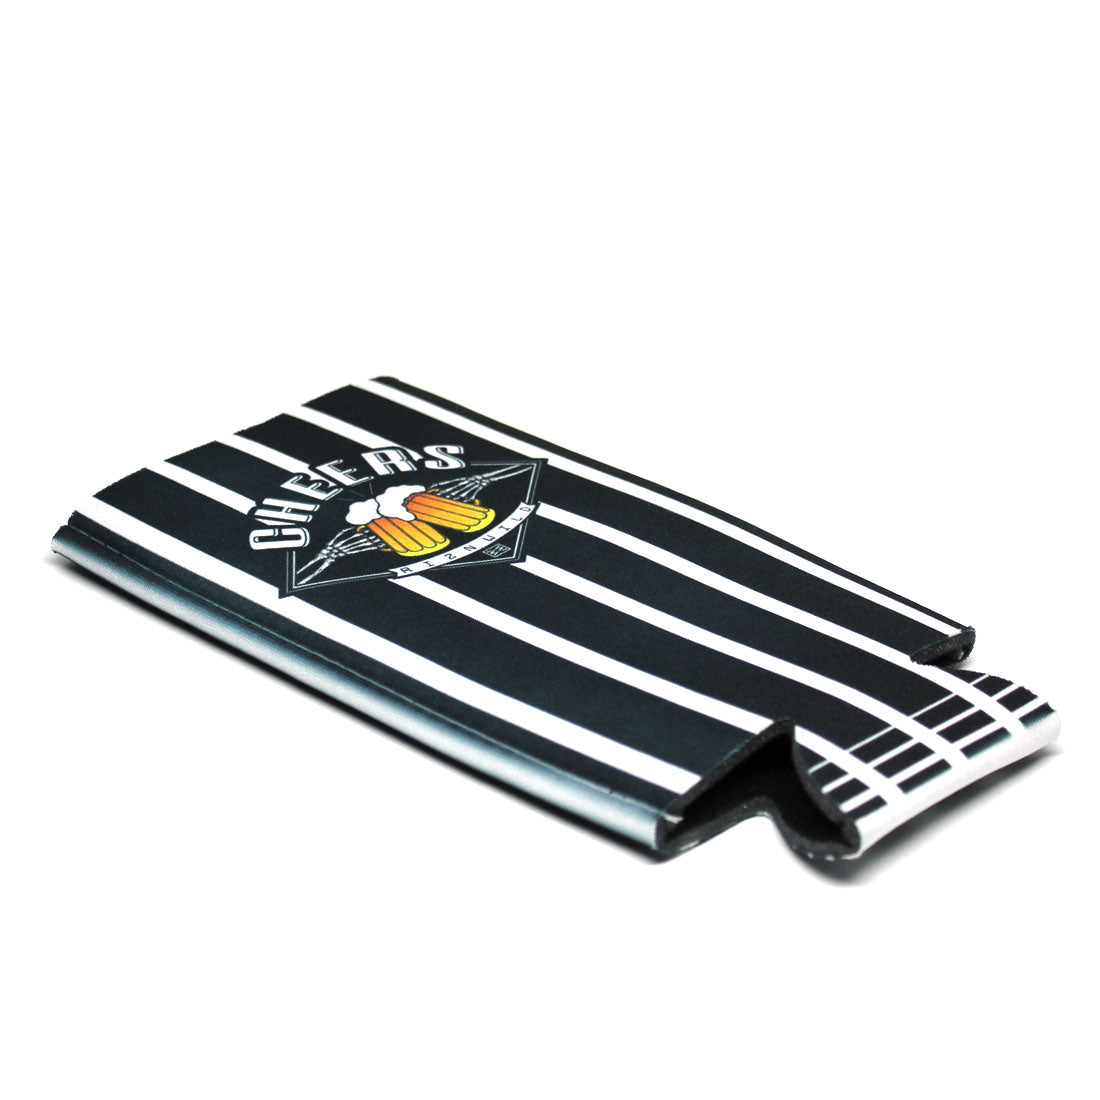 Cheers Tallcan Sublimated Koozie Black/White